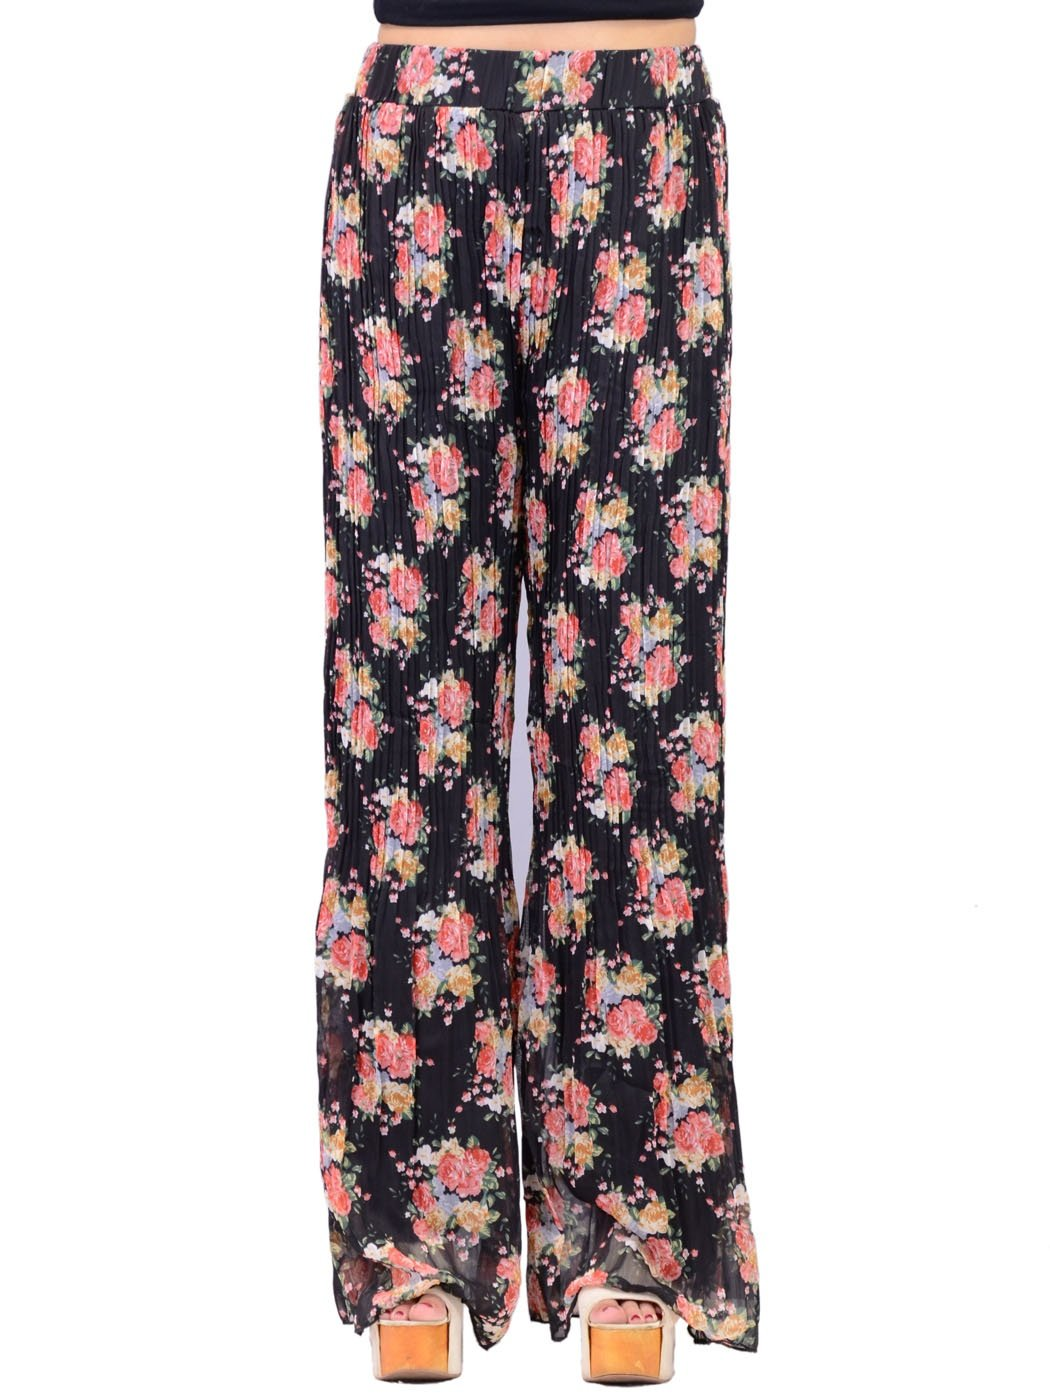 Honey Punch Floral Print All Over Pleated Palazzo Pants With Flared Cut